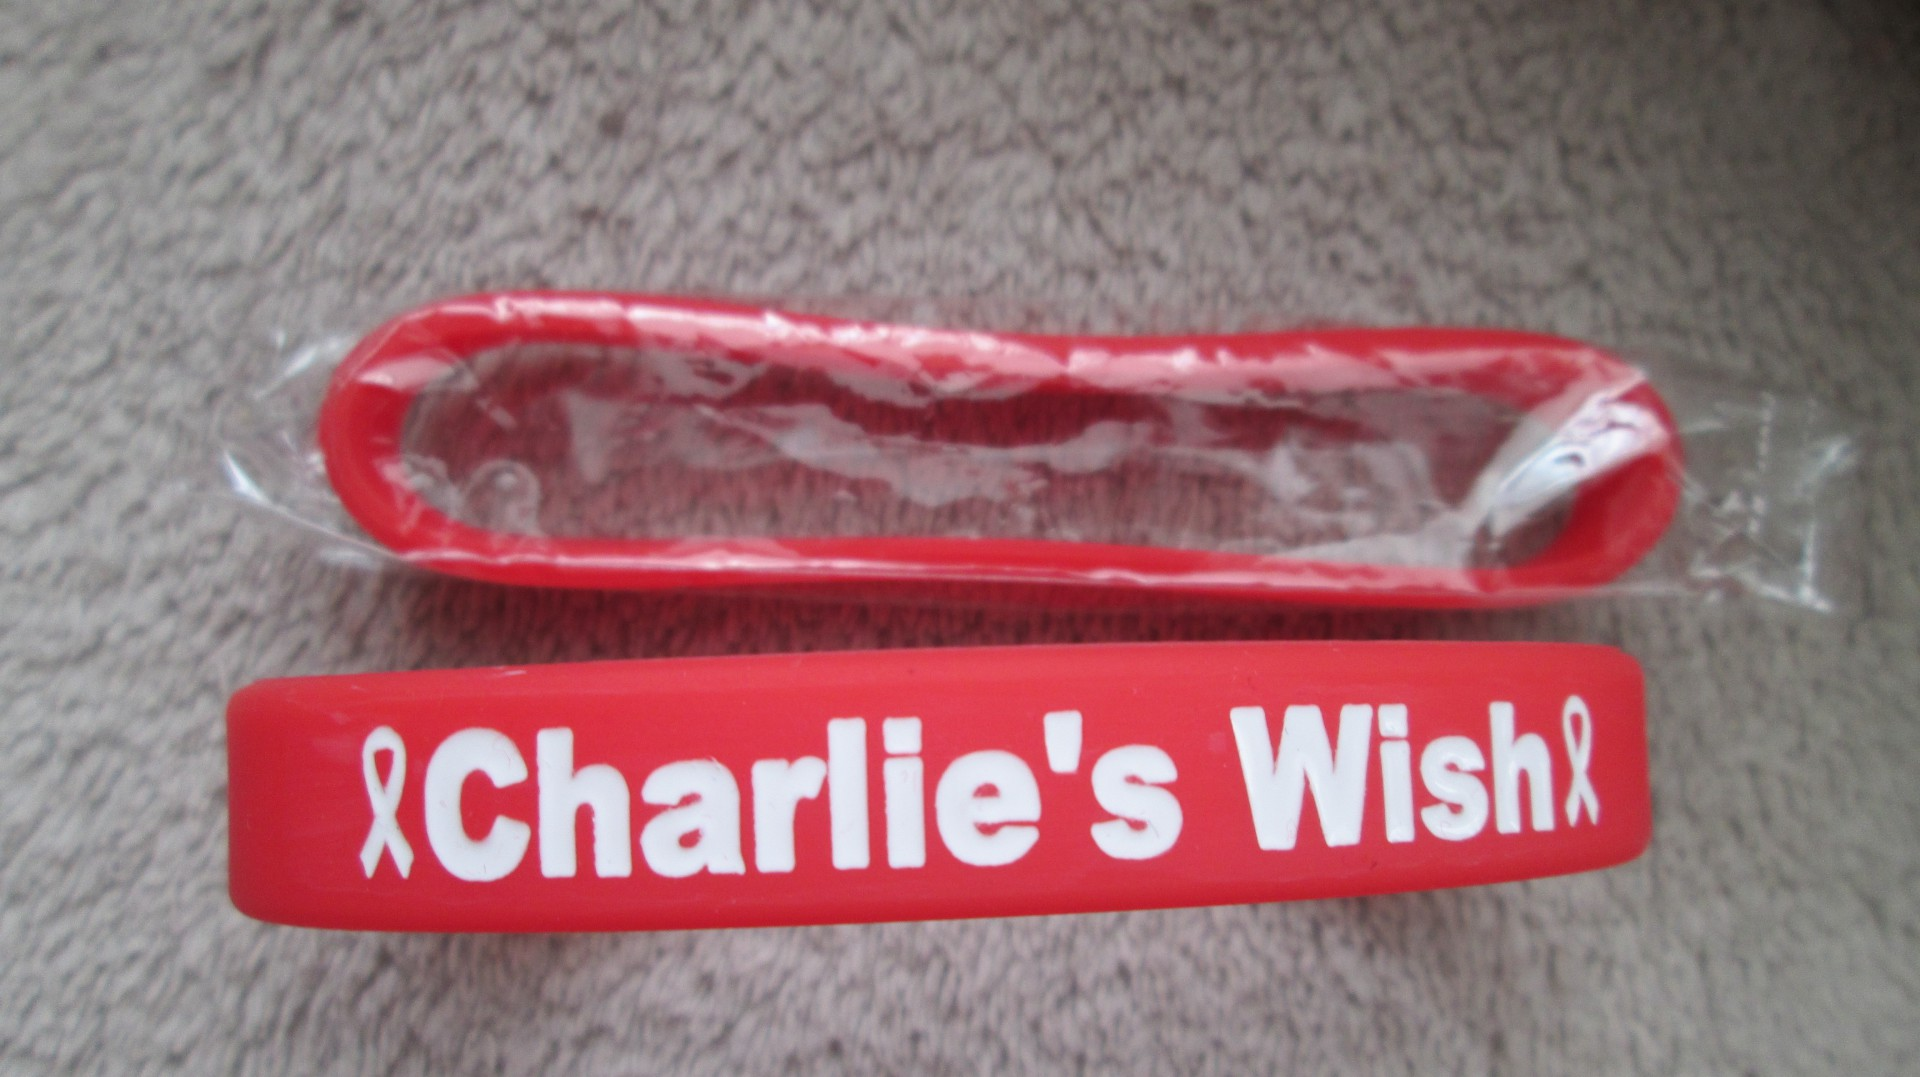 Charlie's Wish Support Bands